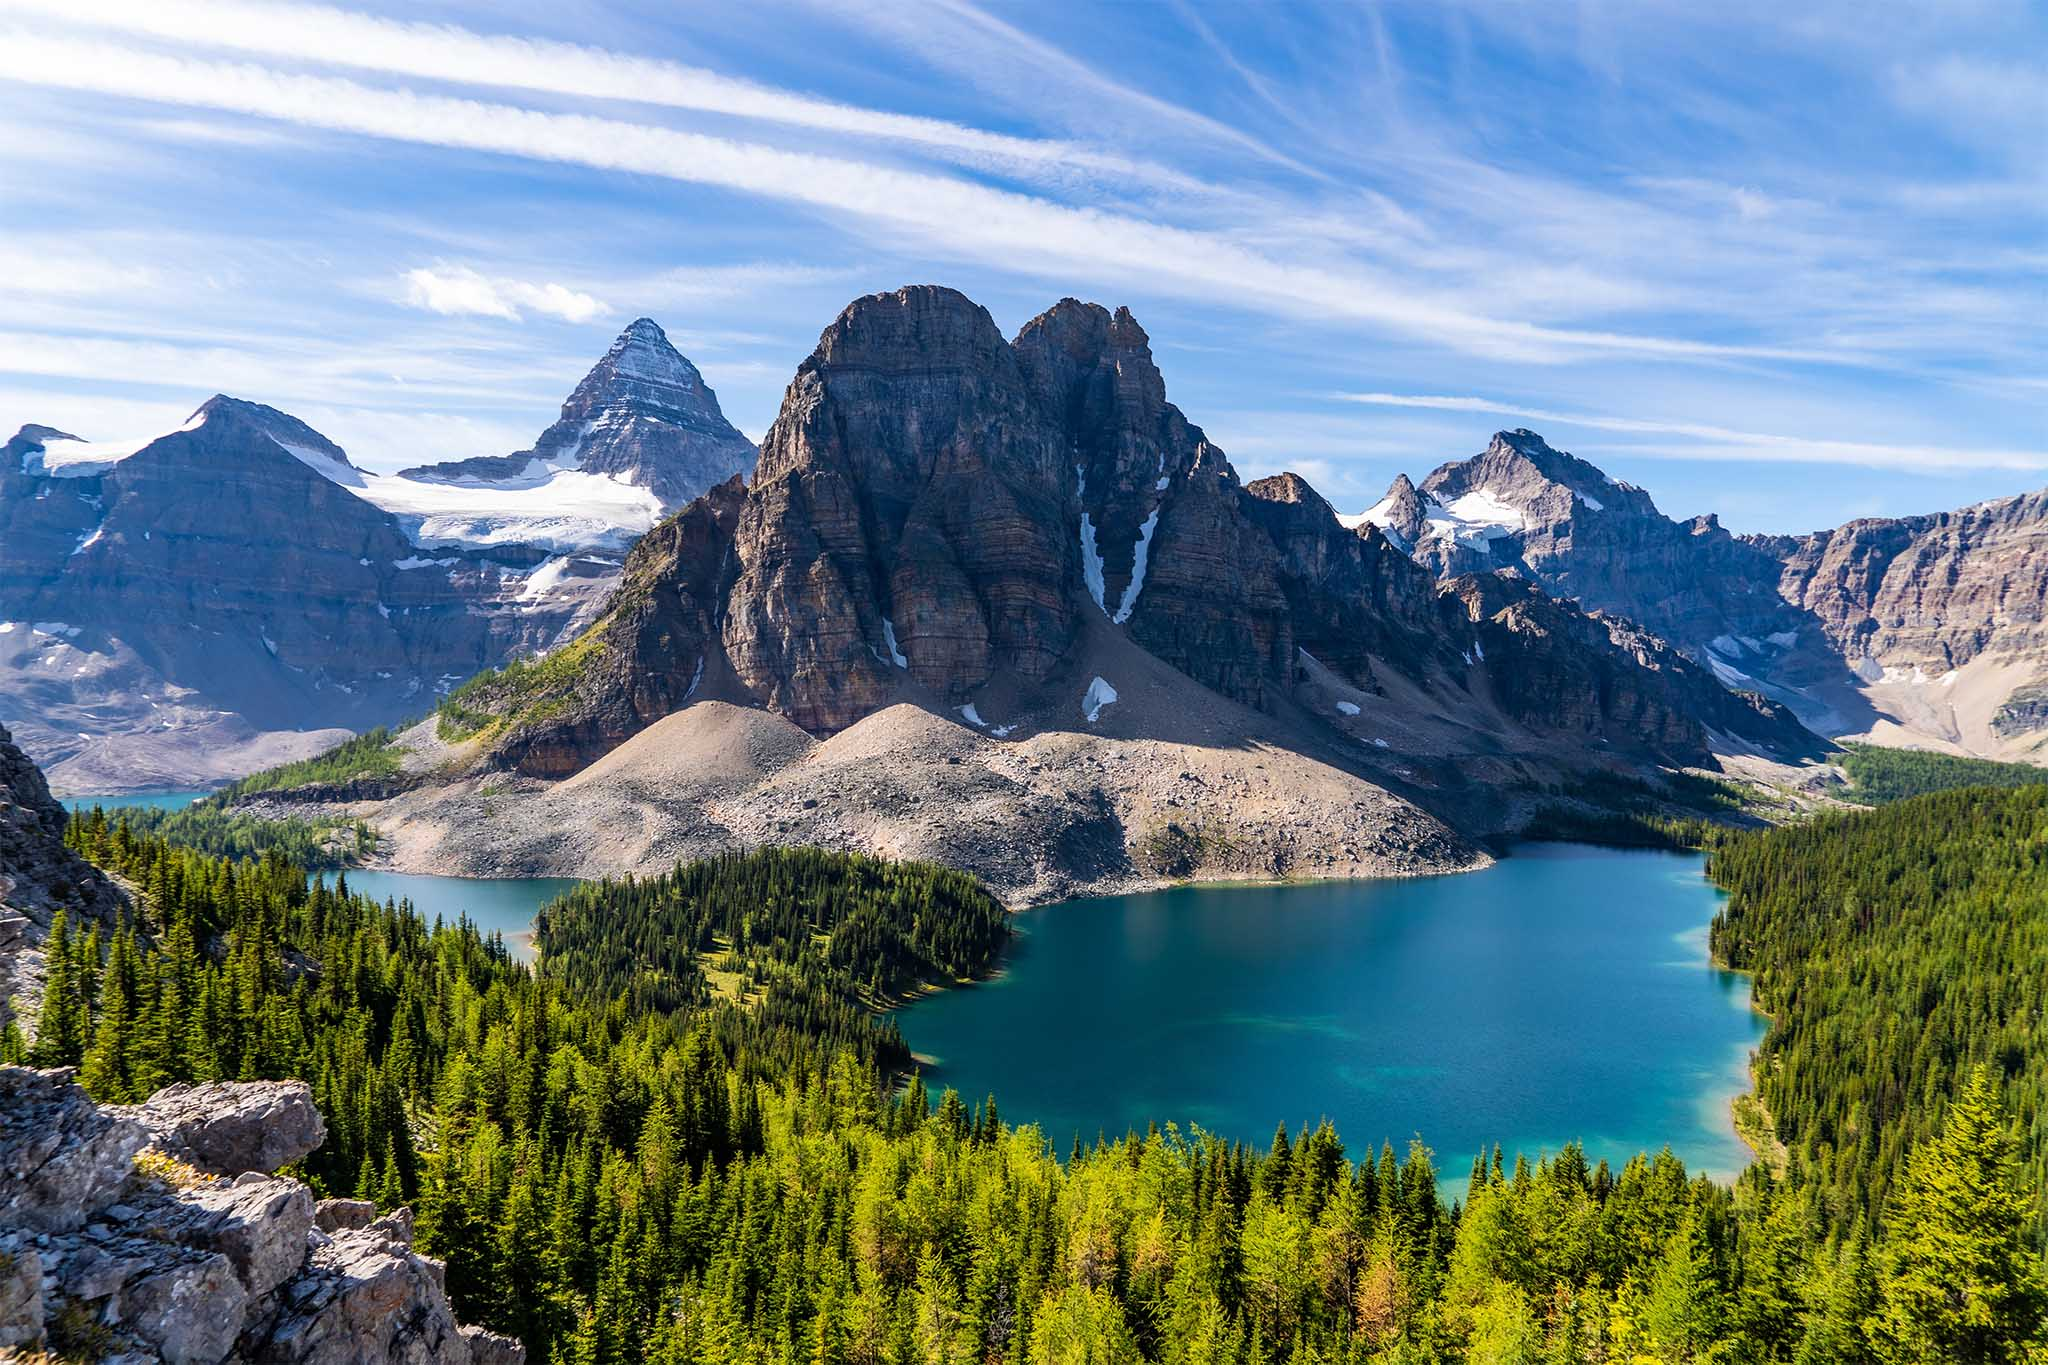 Mount Assiniboine Backpacking 5 Days Canada Flashpackerconnect Adventure Travel